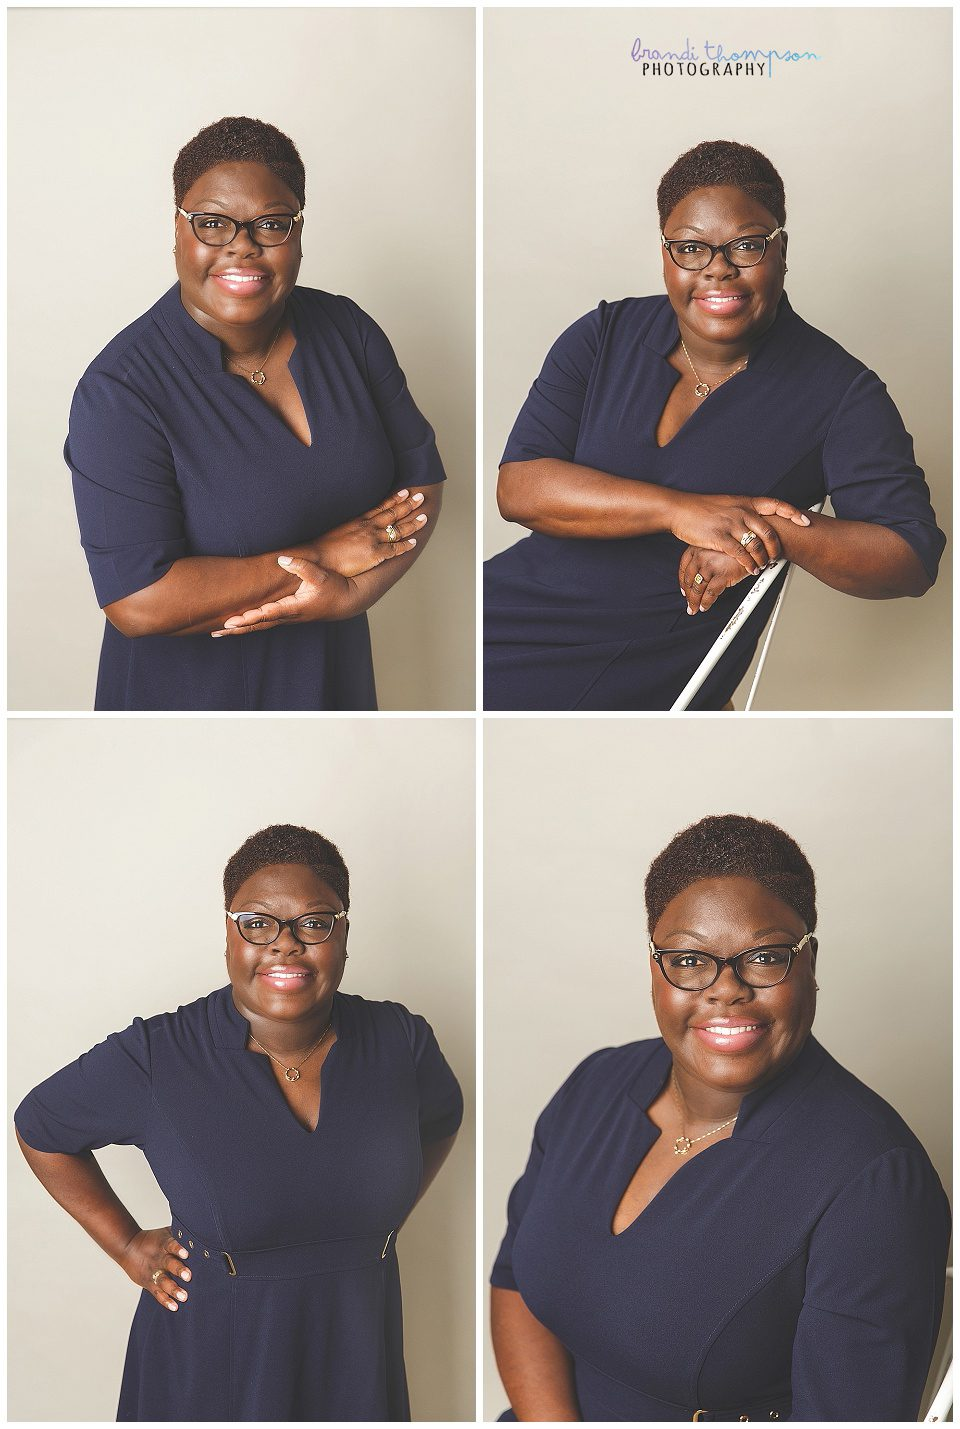 A collage of headshots of a Black woman with short hair in a navy dress against a light gray background